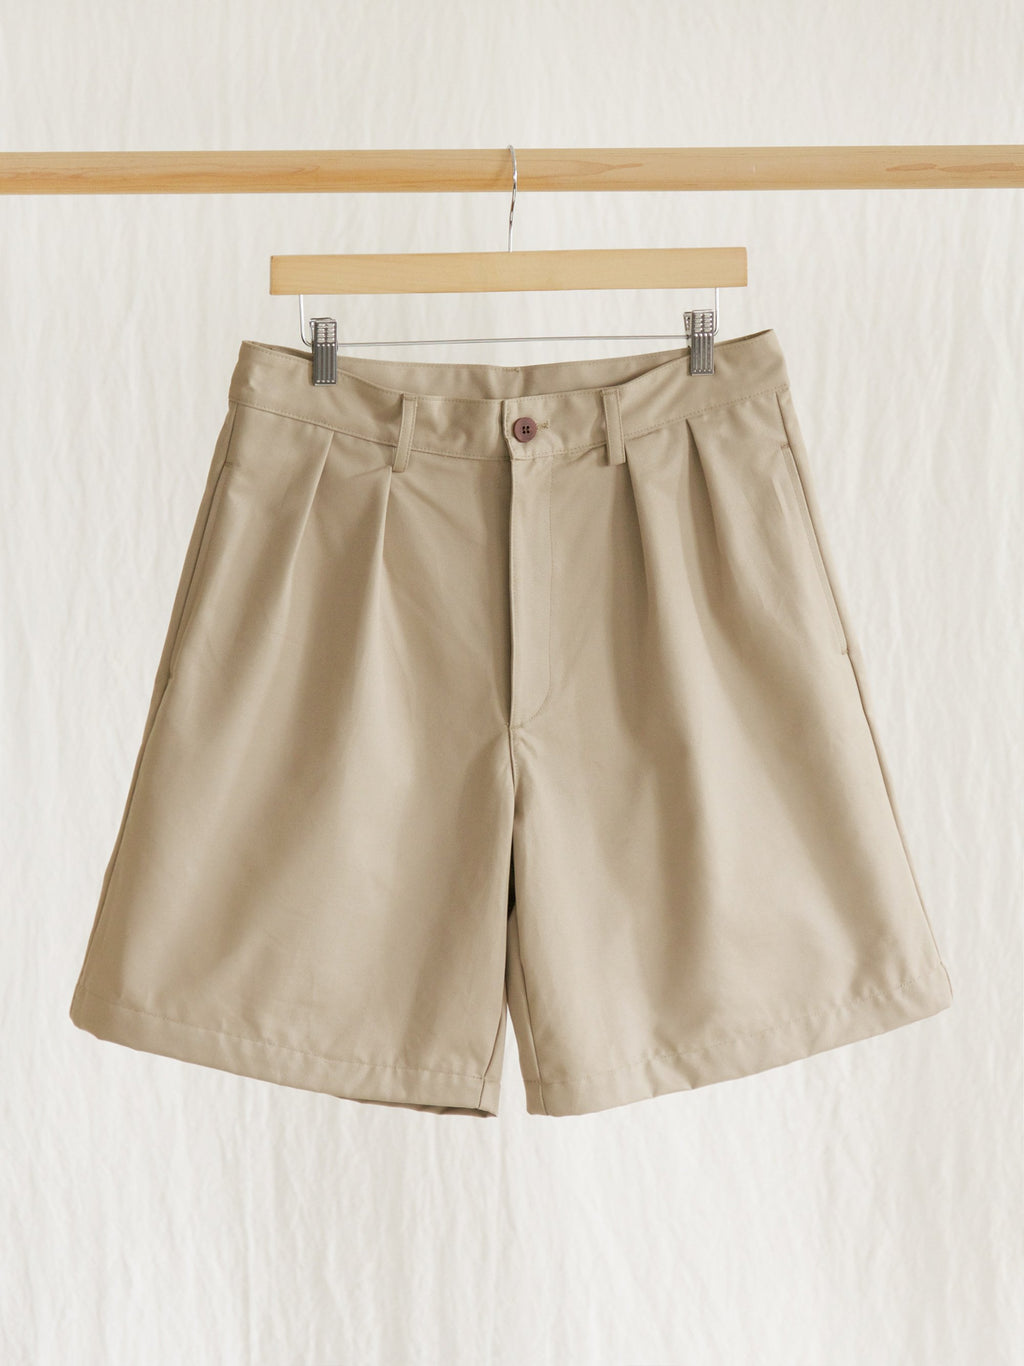 Namu Shop - paa Double Pleat Short - Khaki